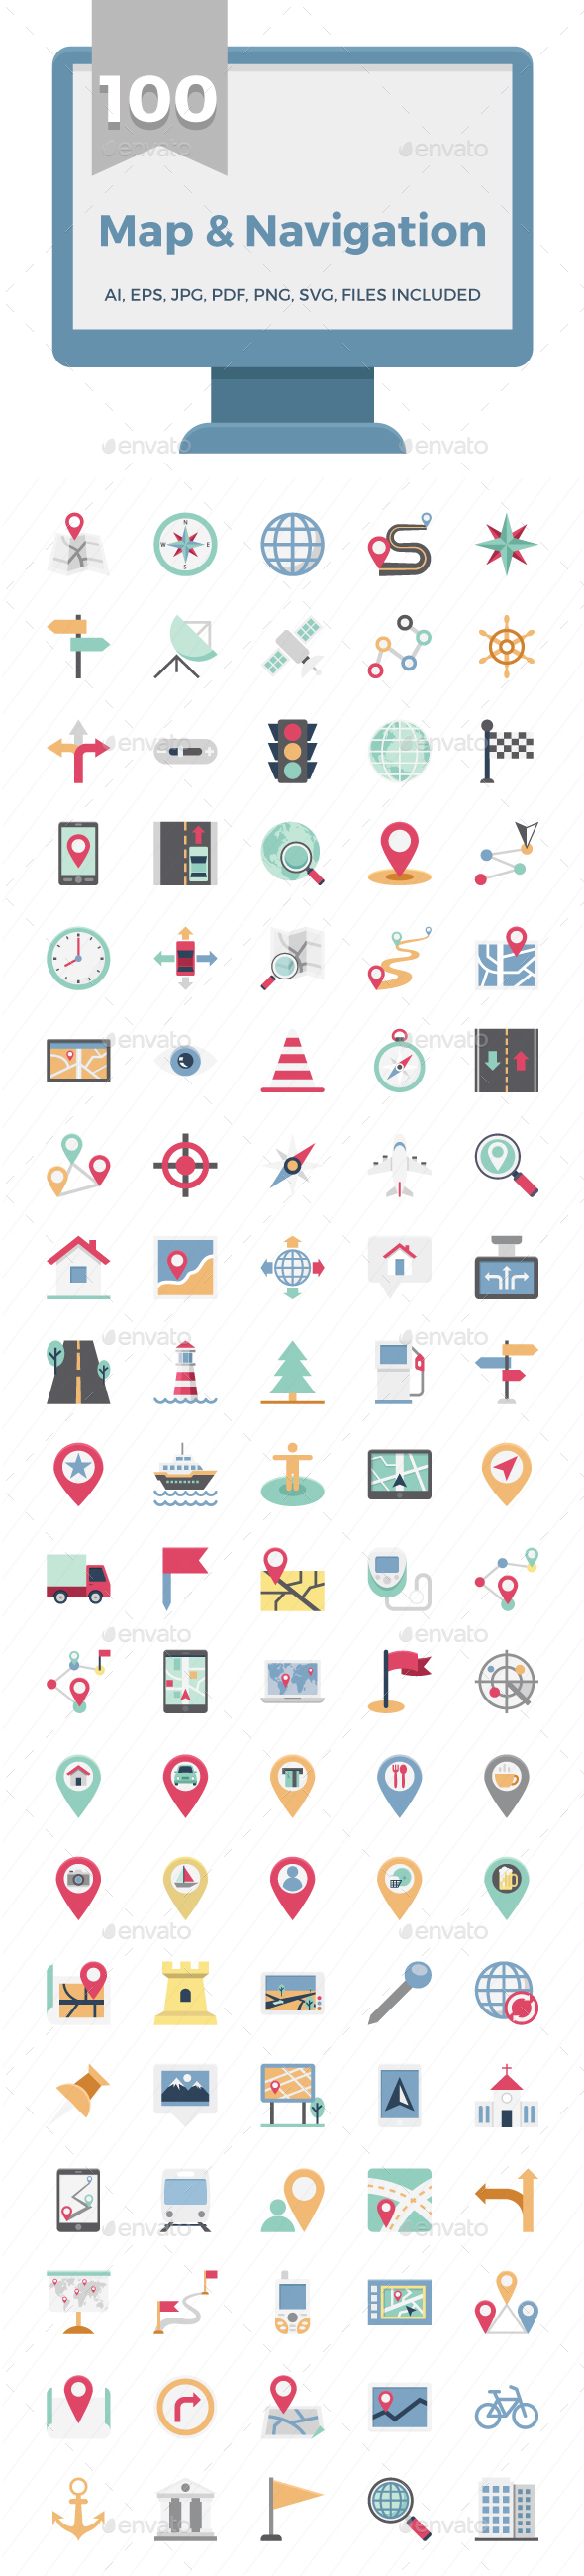 100 Map and Navigation Color Vector Icons Set - Icons